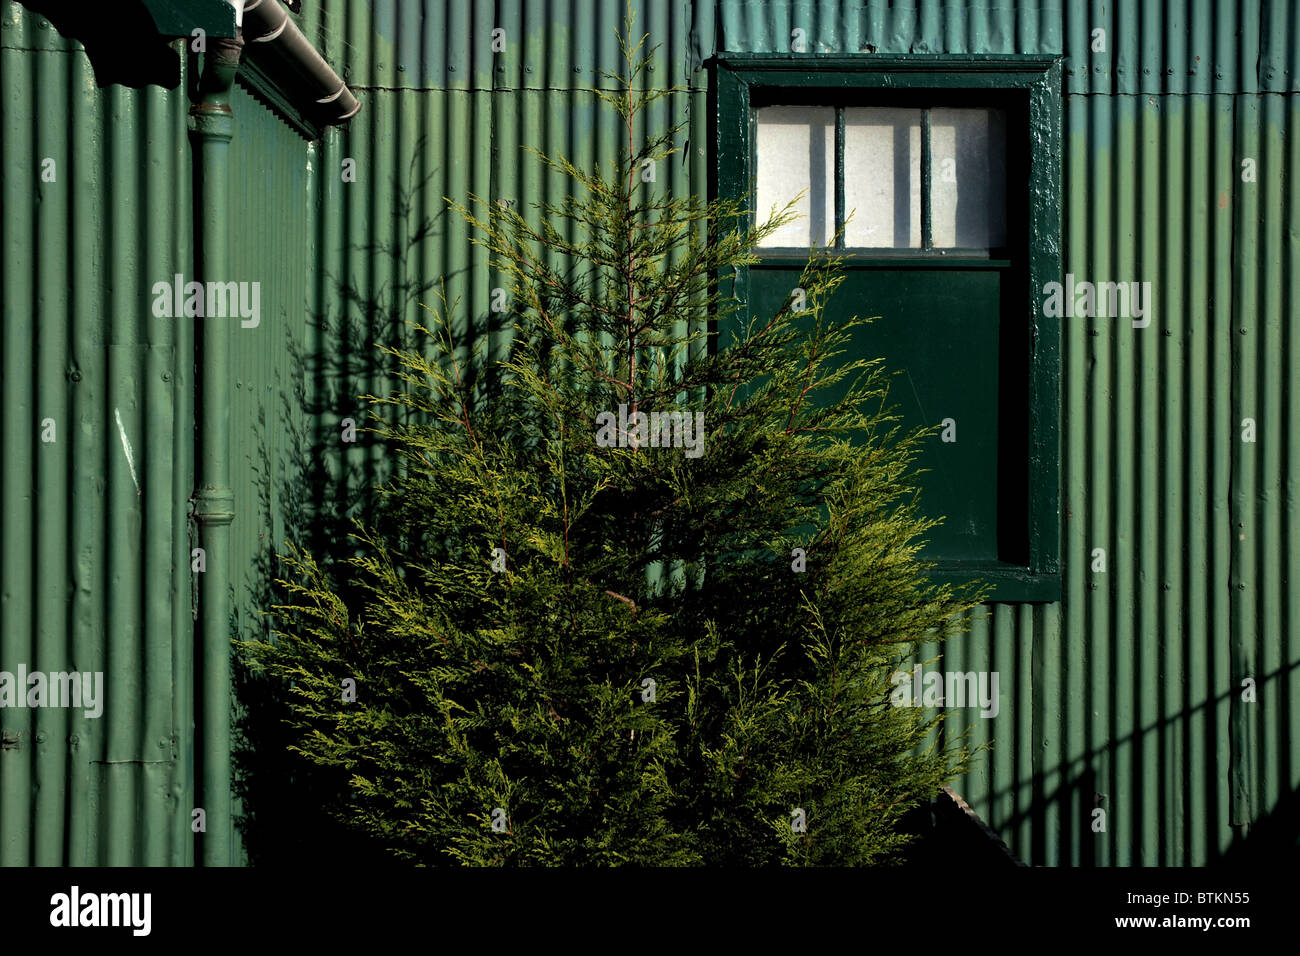 An evergreen tree standing in front of a green corrugated iron shed. - Stock Image